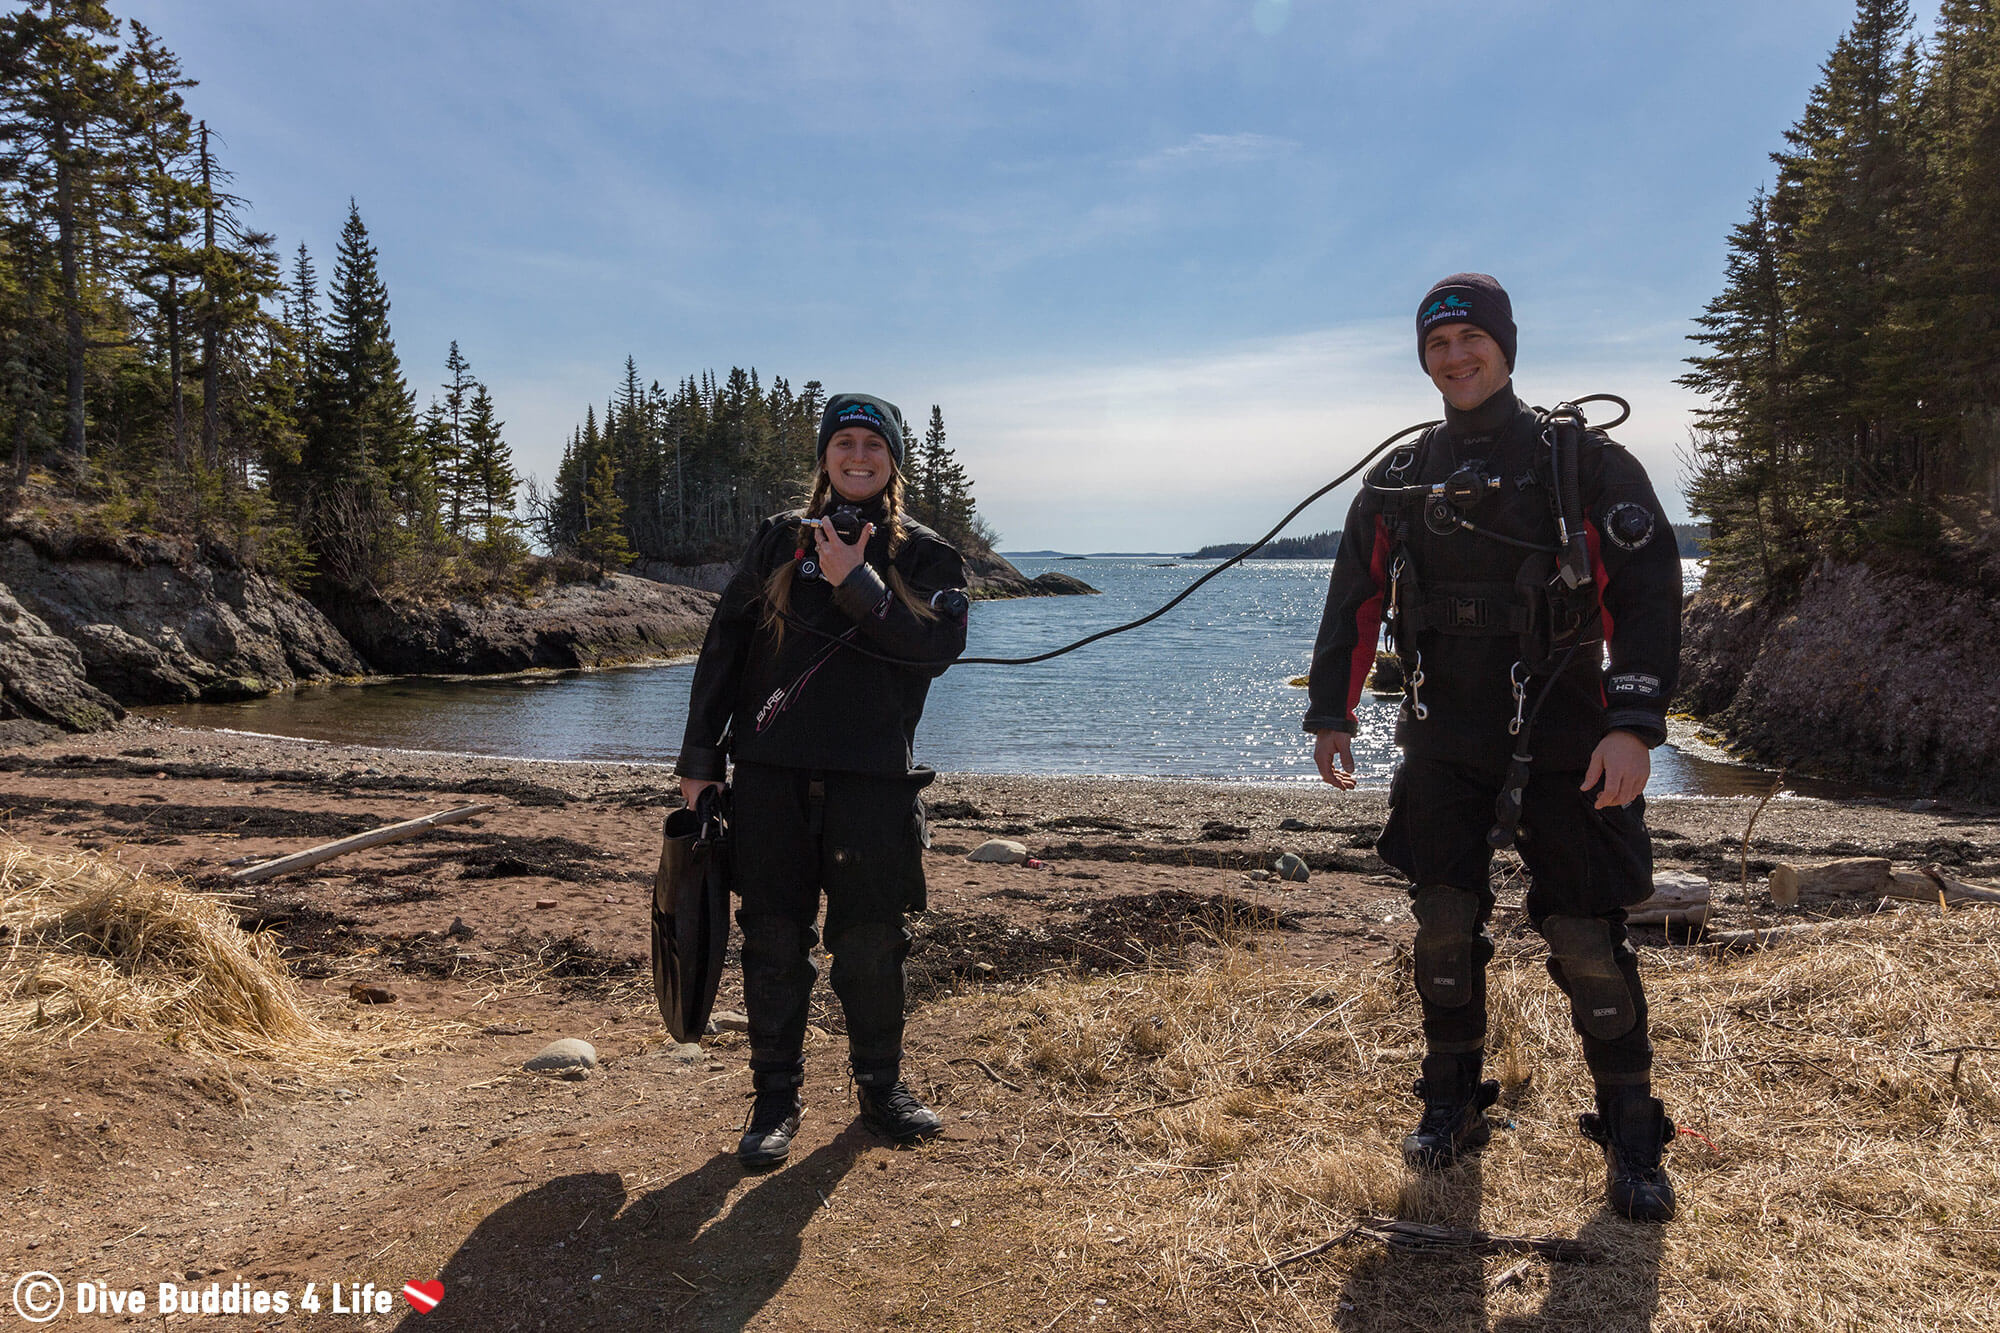 Joey And Ali Getting Ready To Go Scuba Diving At The Grand Manan Ferry Terminal, New Brunswick, Canada